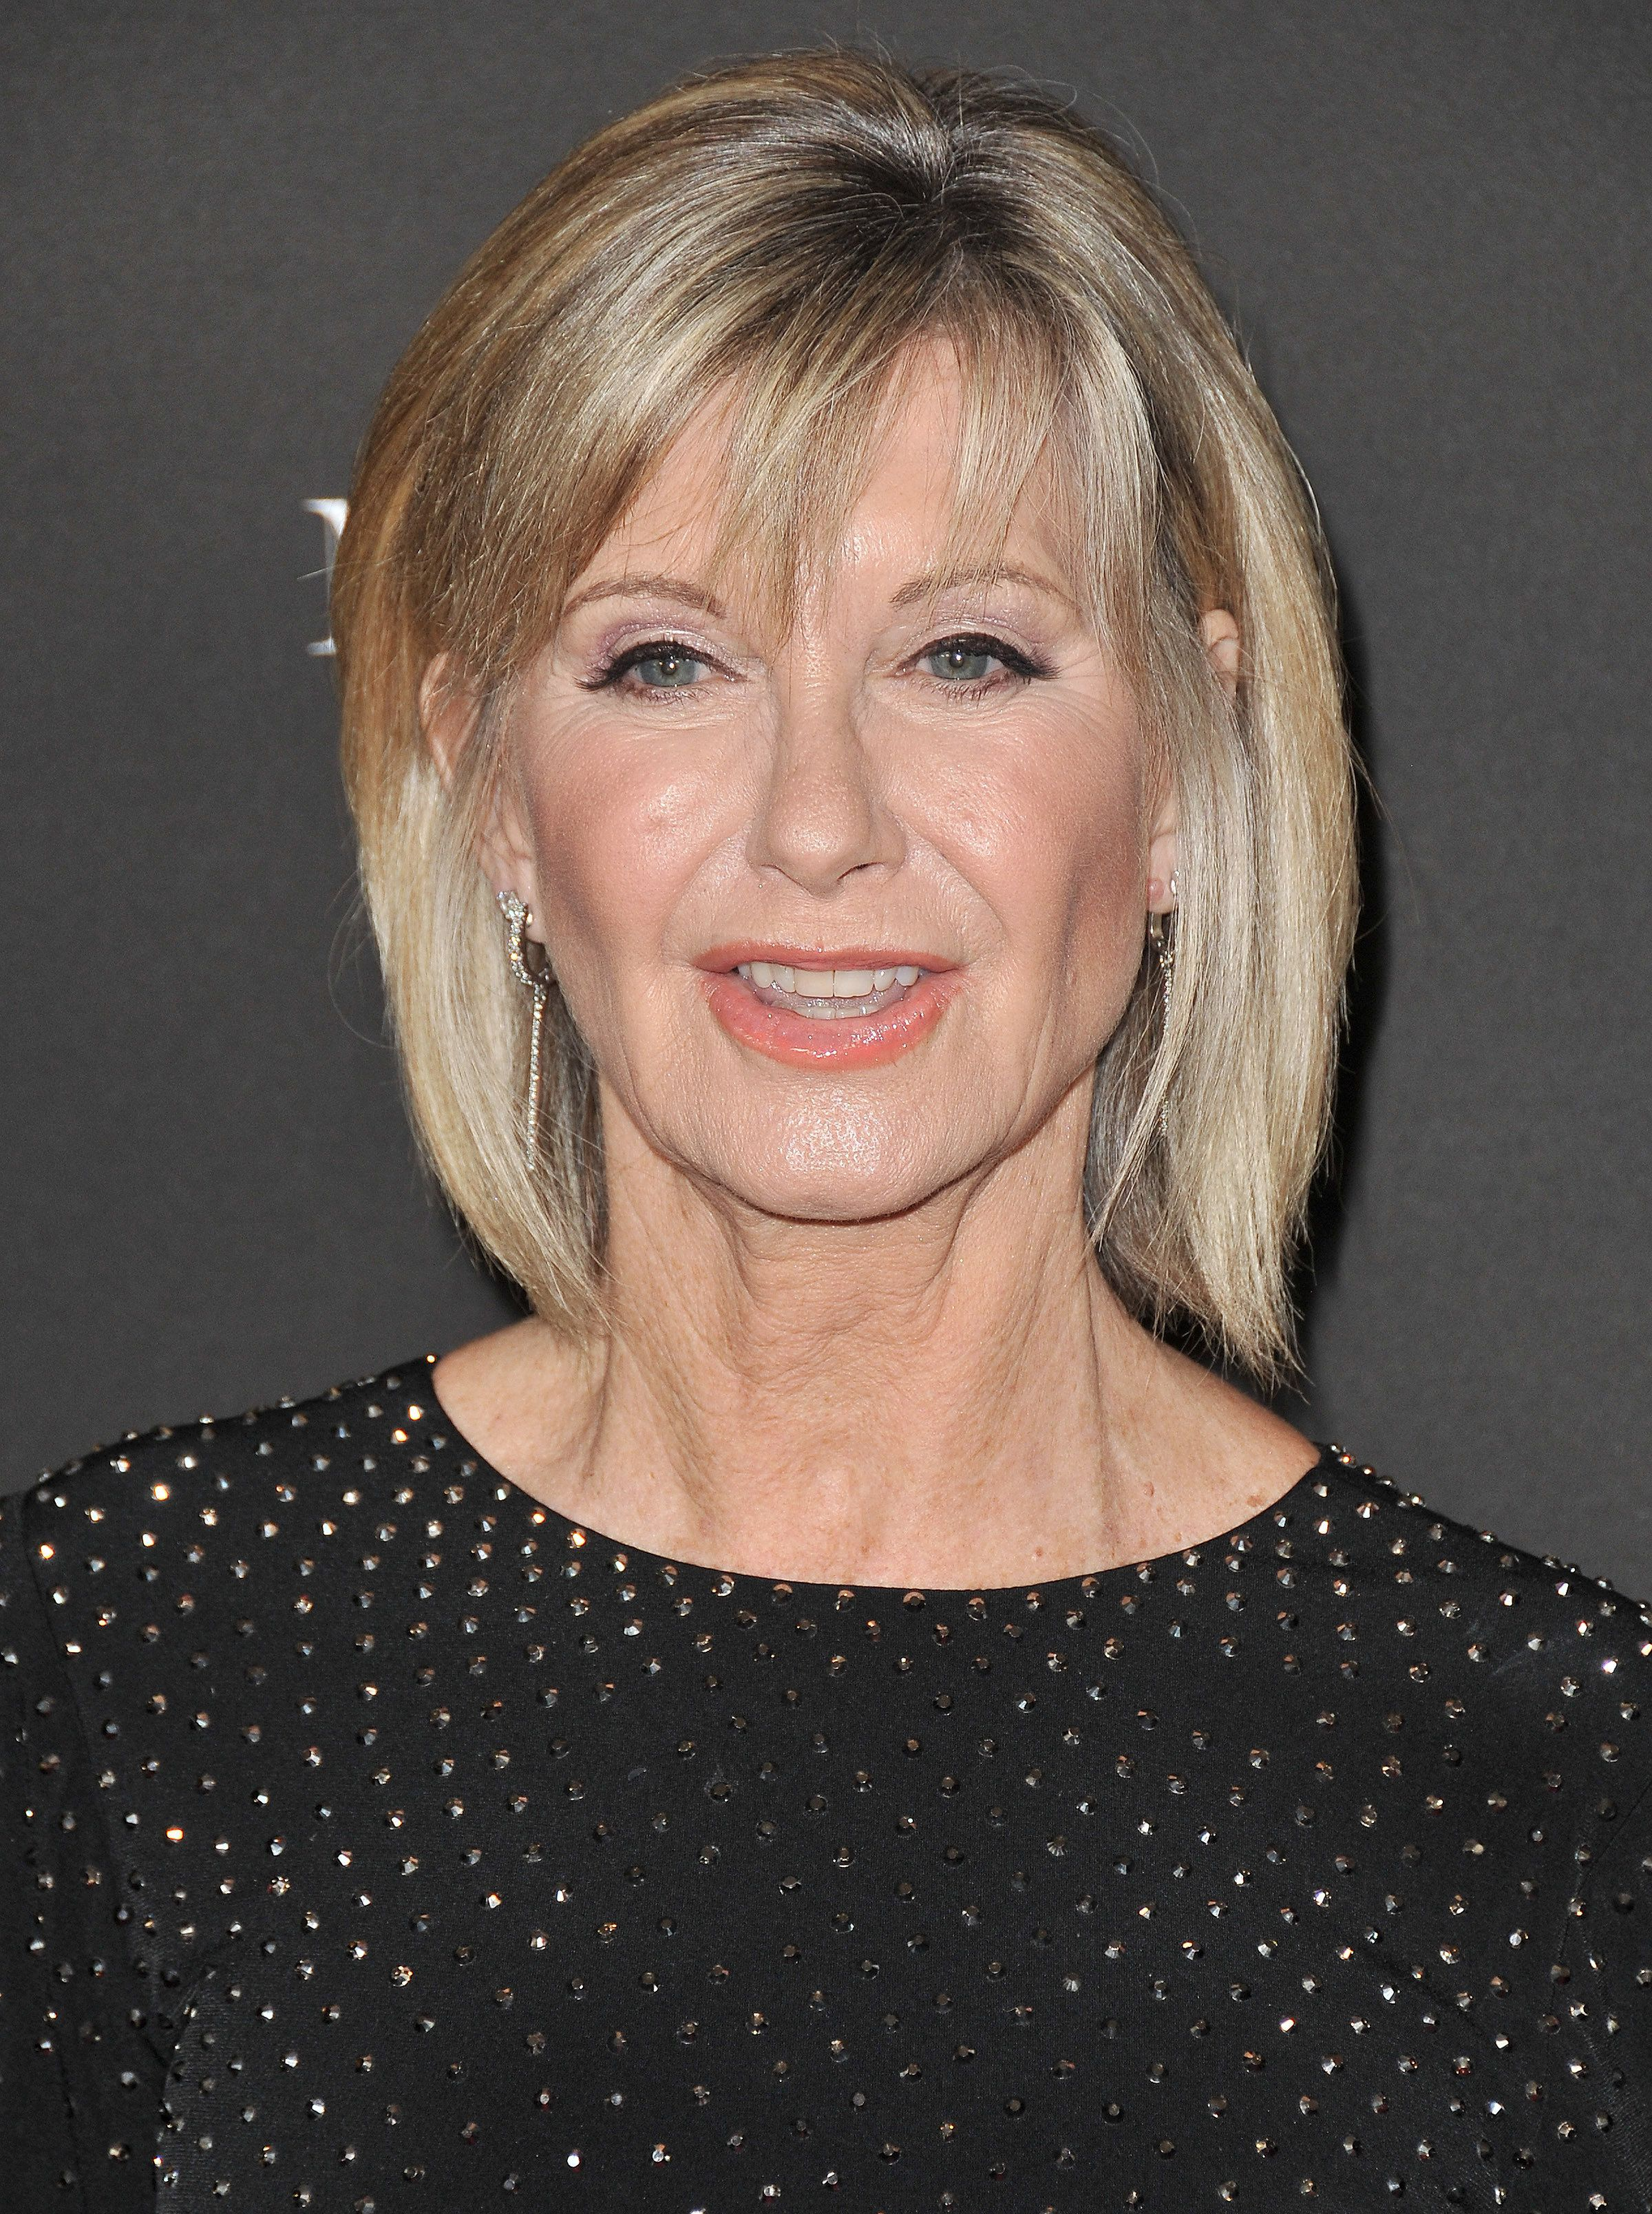 Olivia Newton-John arrives at the 2018 G'Day USA Los Angeles Gala held at the InterContinental Los Angeles Downtown in Los Angeles, CA on Saturday, January 27, 2018. (Photo By Sthanlee B. Mirador/Sipa USA)